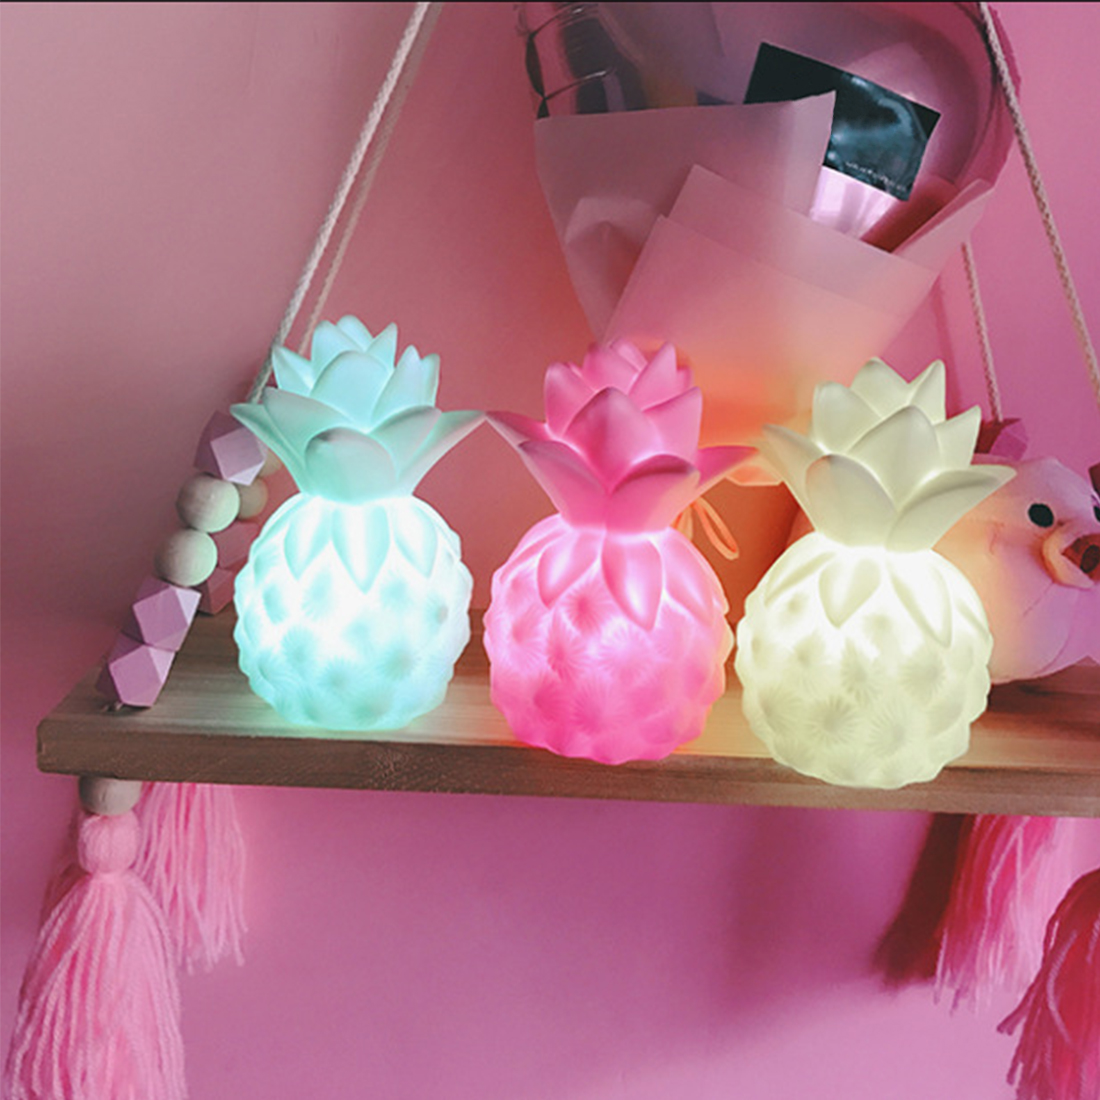 1pc Cartoon LED Night Light Pineapple Table Lamp Creative Gift For Children Baby Light Yellow / Pink / Green Ananas Fluorescente